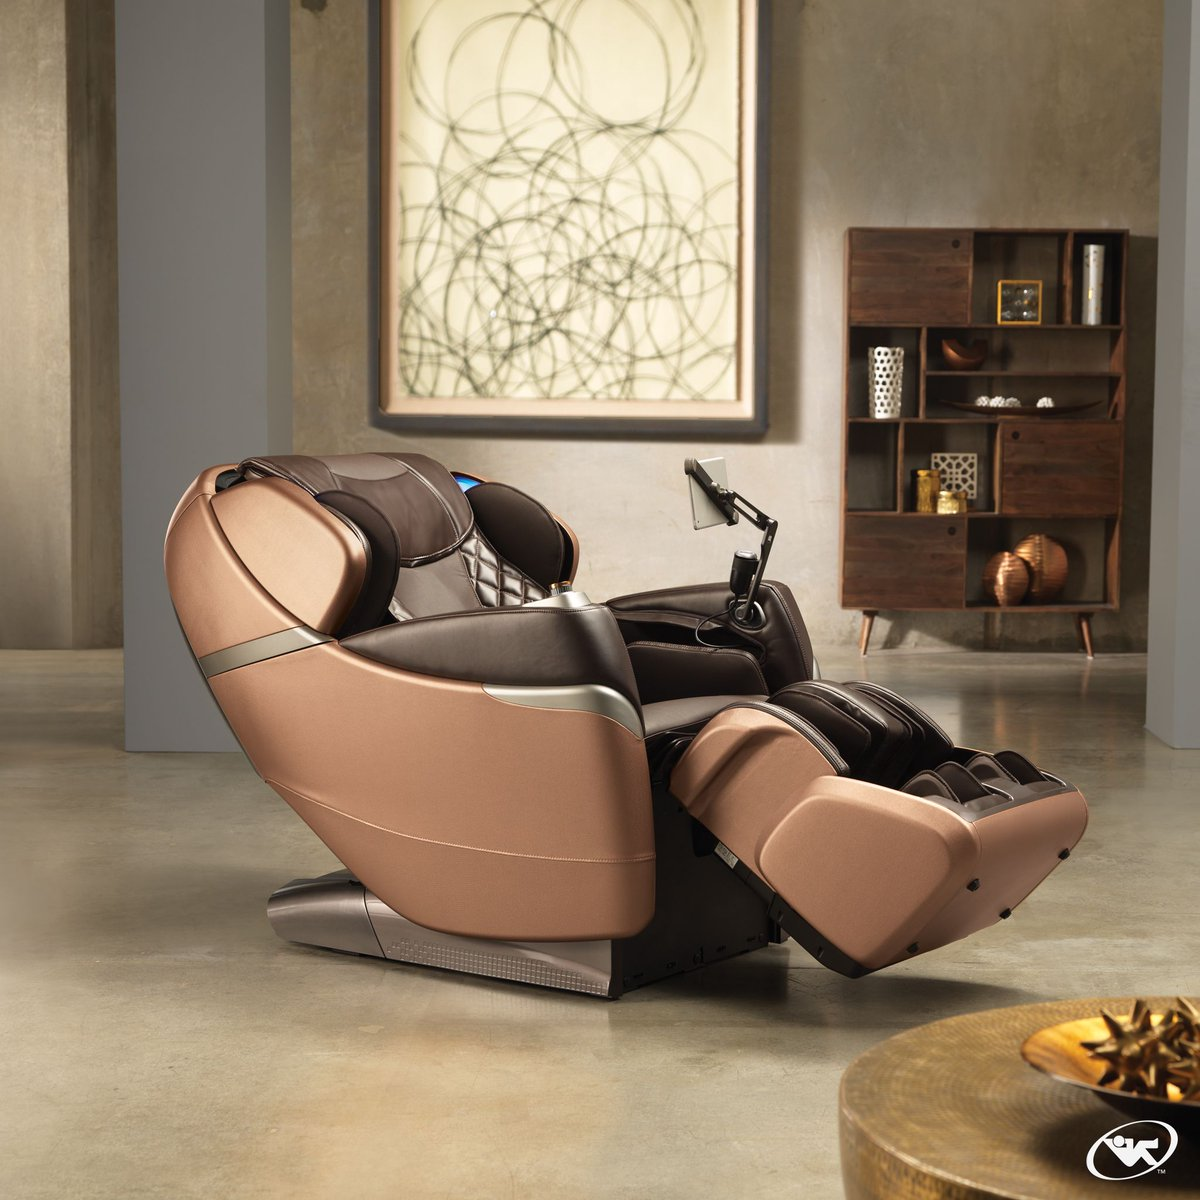 Massage Therapist Chair Relax The Back On Twitter